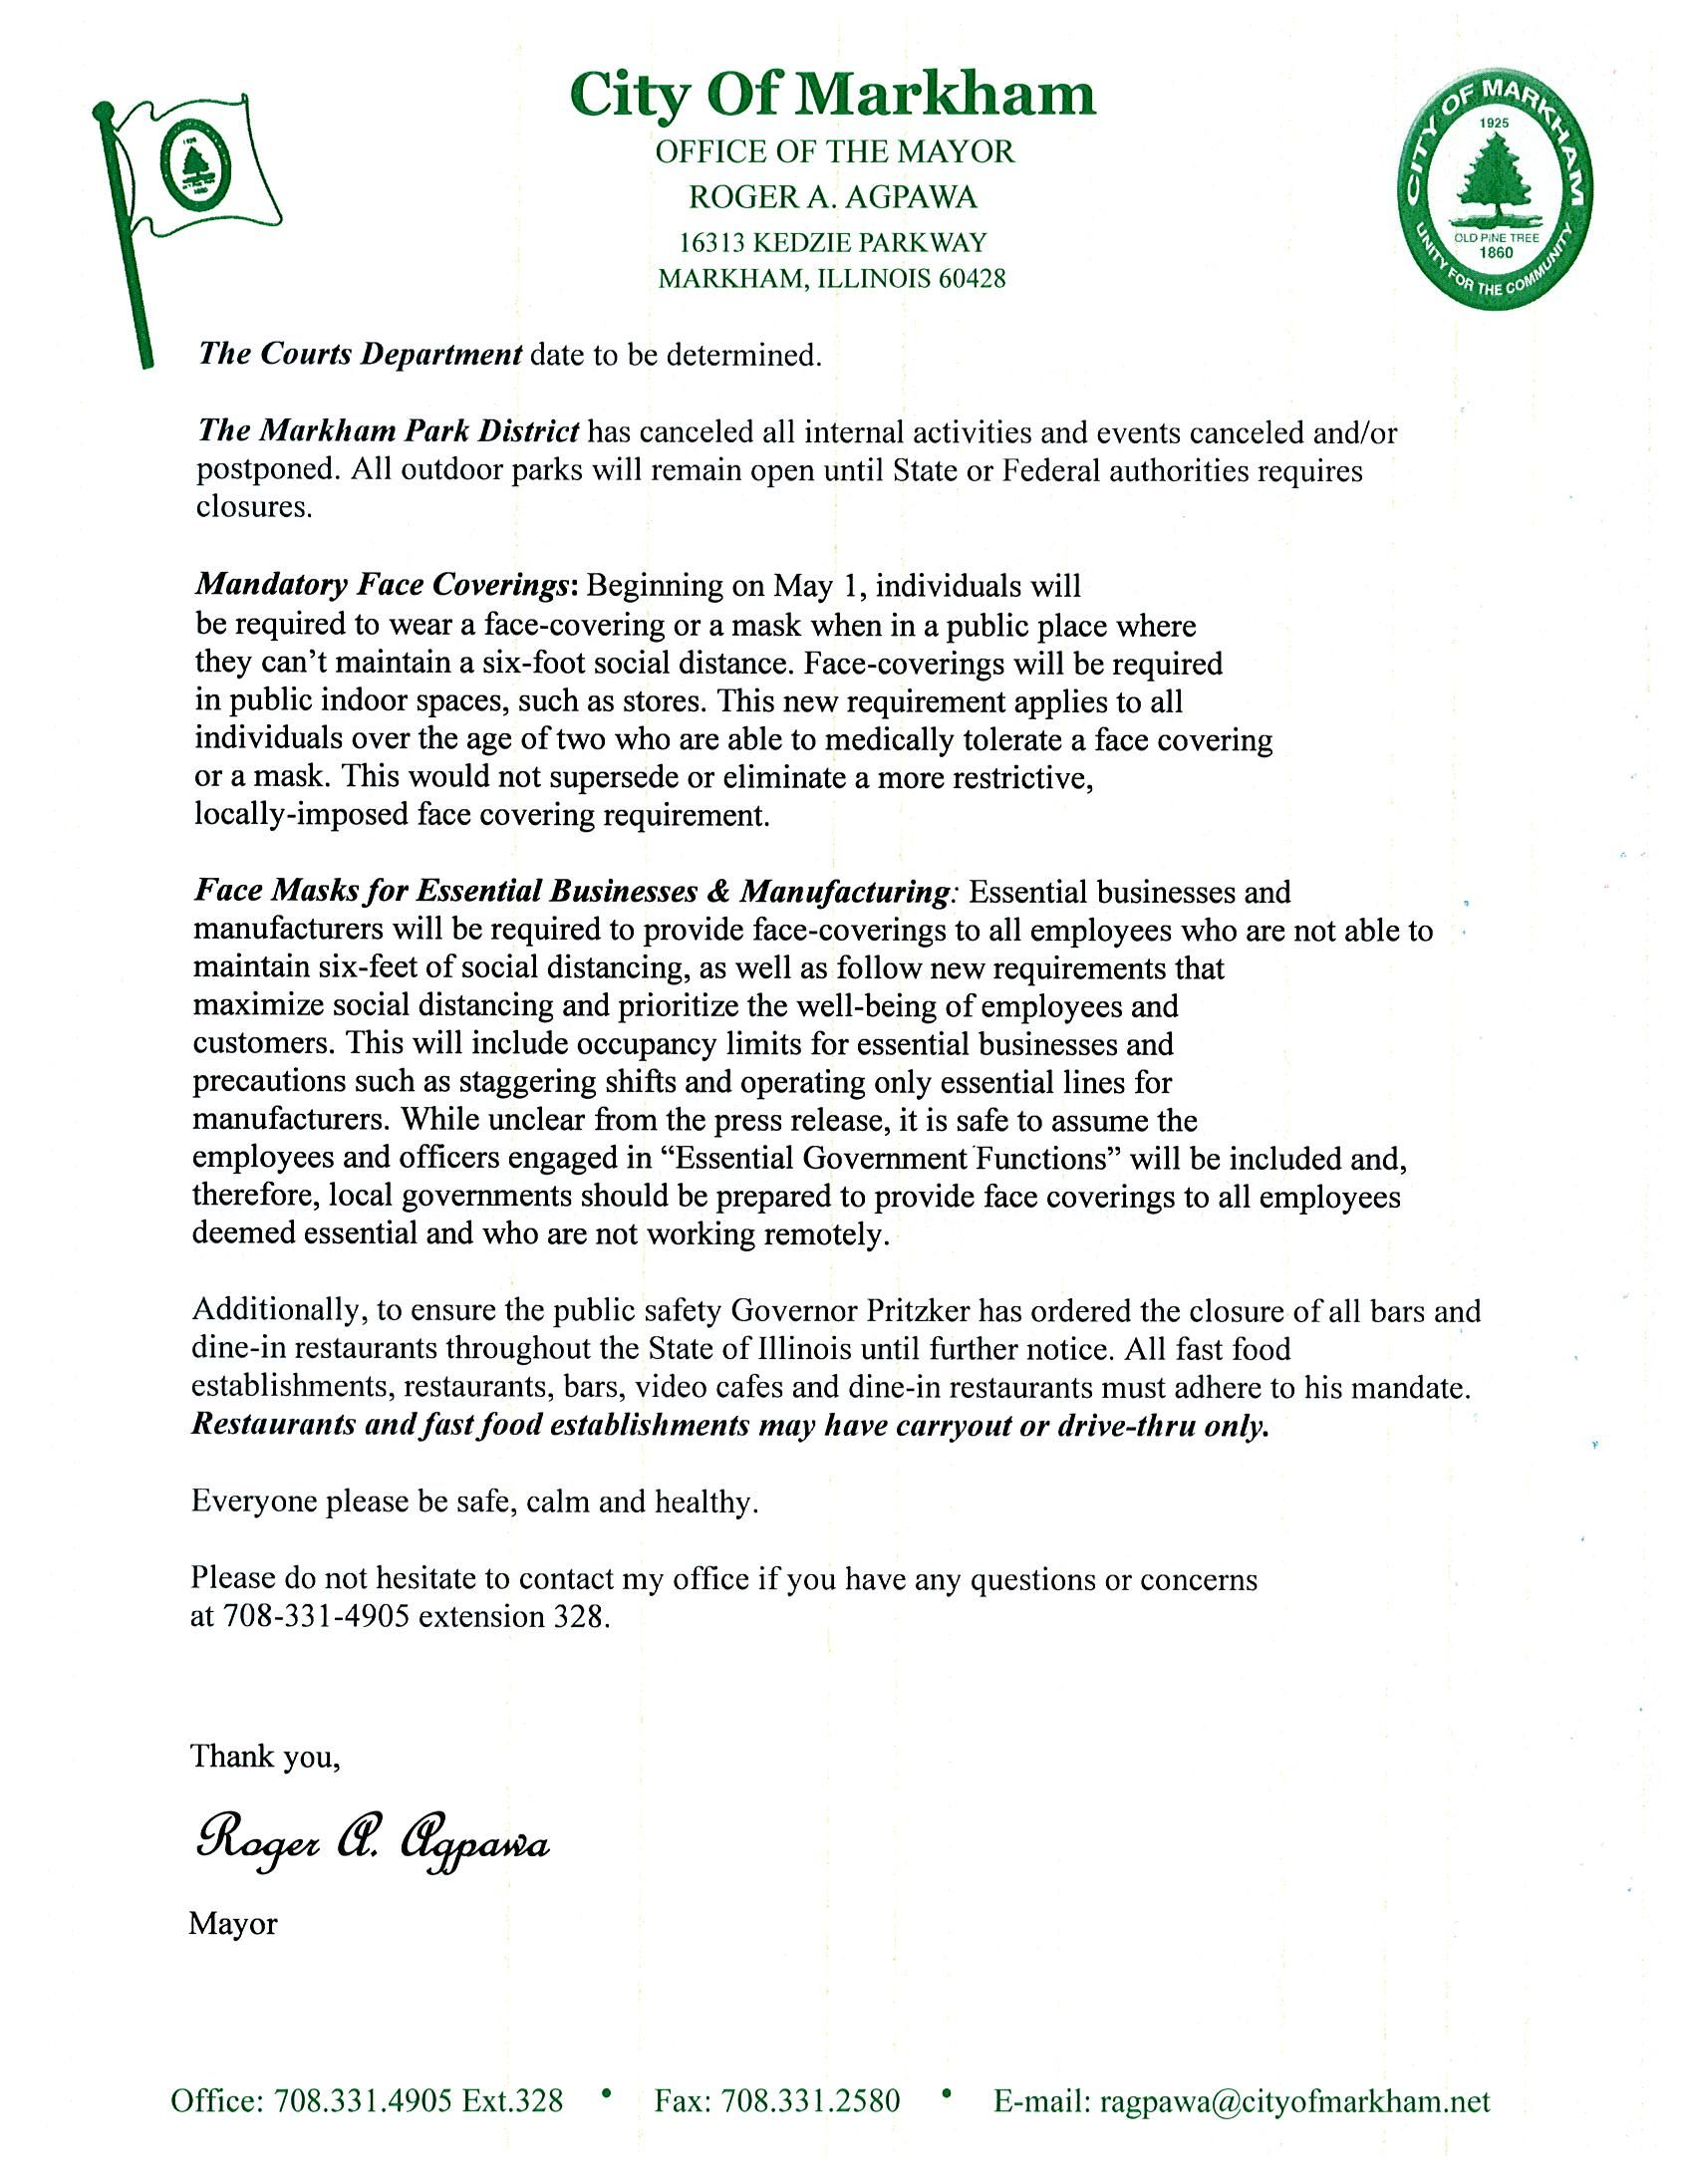 City of Markham Extended Executive Letter Updated 43020_Page_2